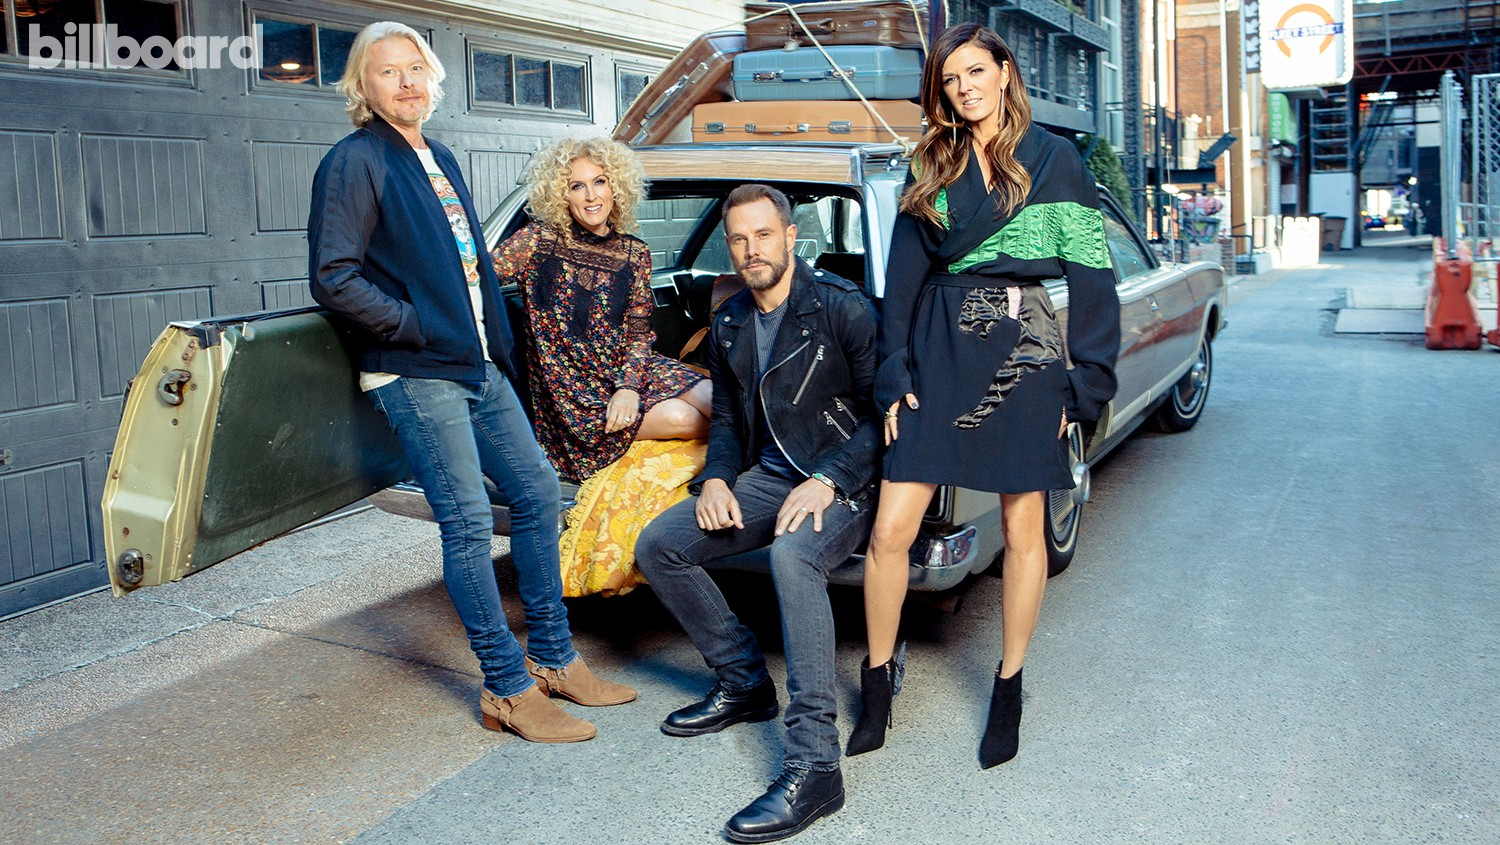 From left: Phillip Sweet, Kimberly Schlapman, Jimi Westbrook and Karen Fairchild of Little Big Town photographed March 15 at Printers Alley in Nashville.